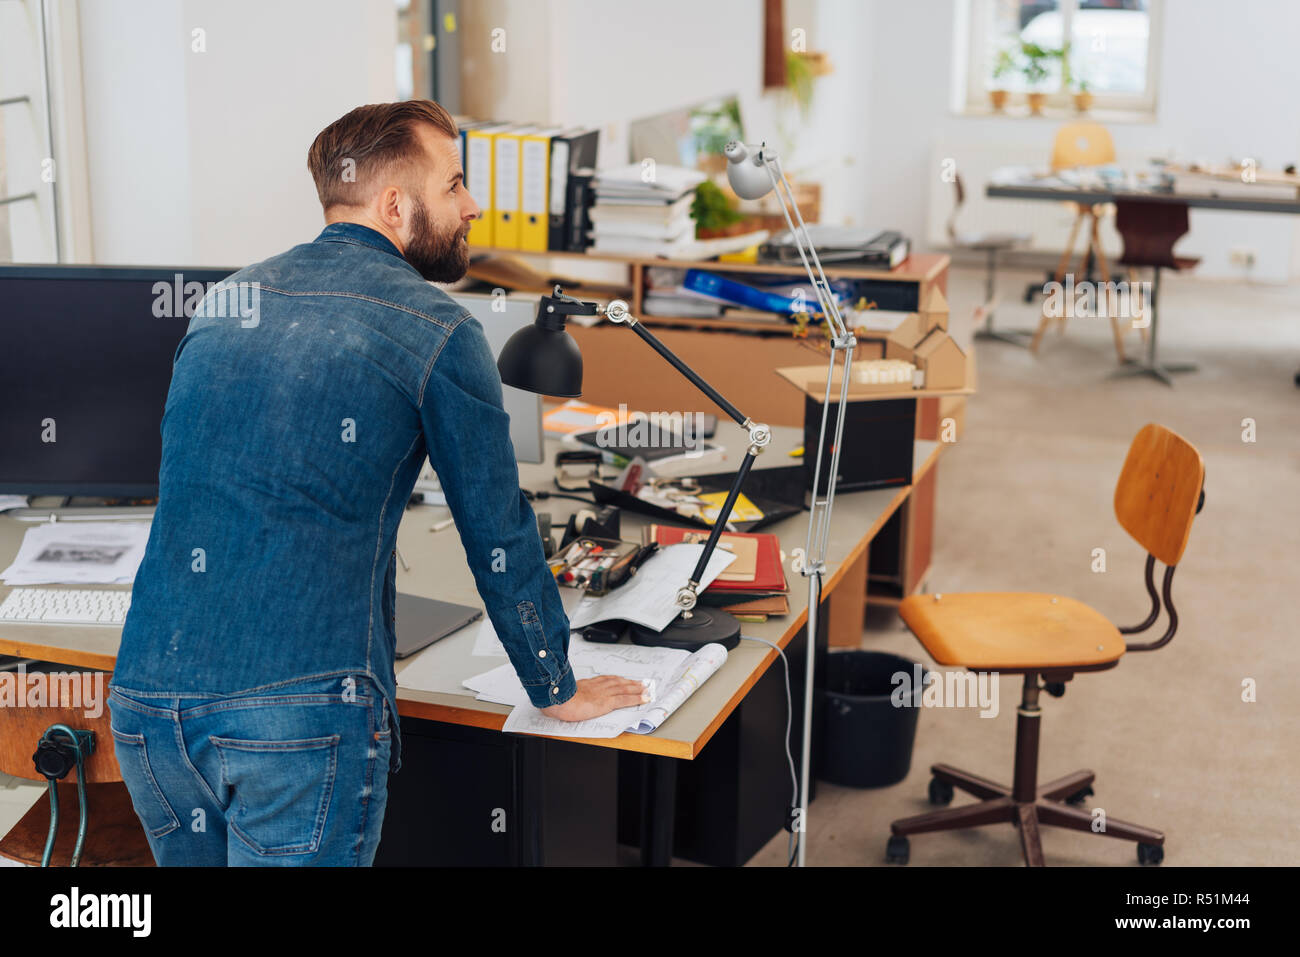 An entrepreneurial young man working from a messy desk in a home office. - Stock Image